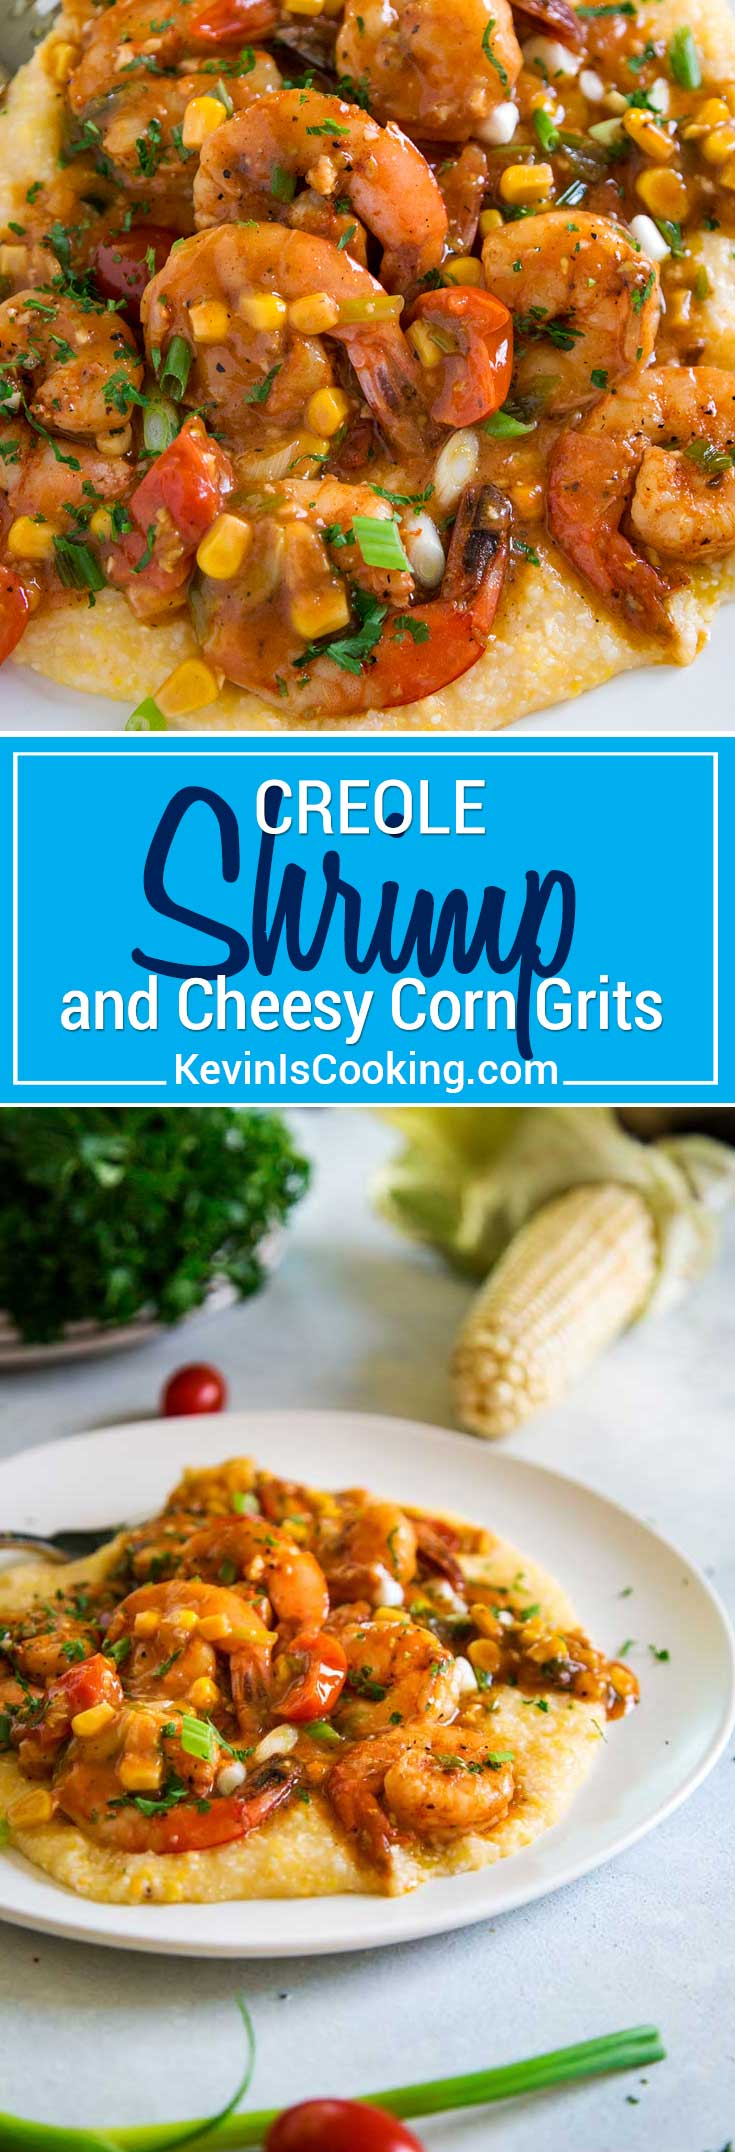 Creole Shrimp and Grits - Kevin Is Cooking